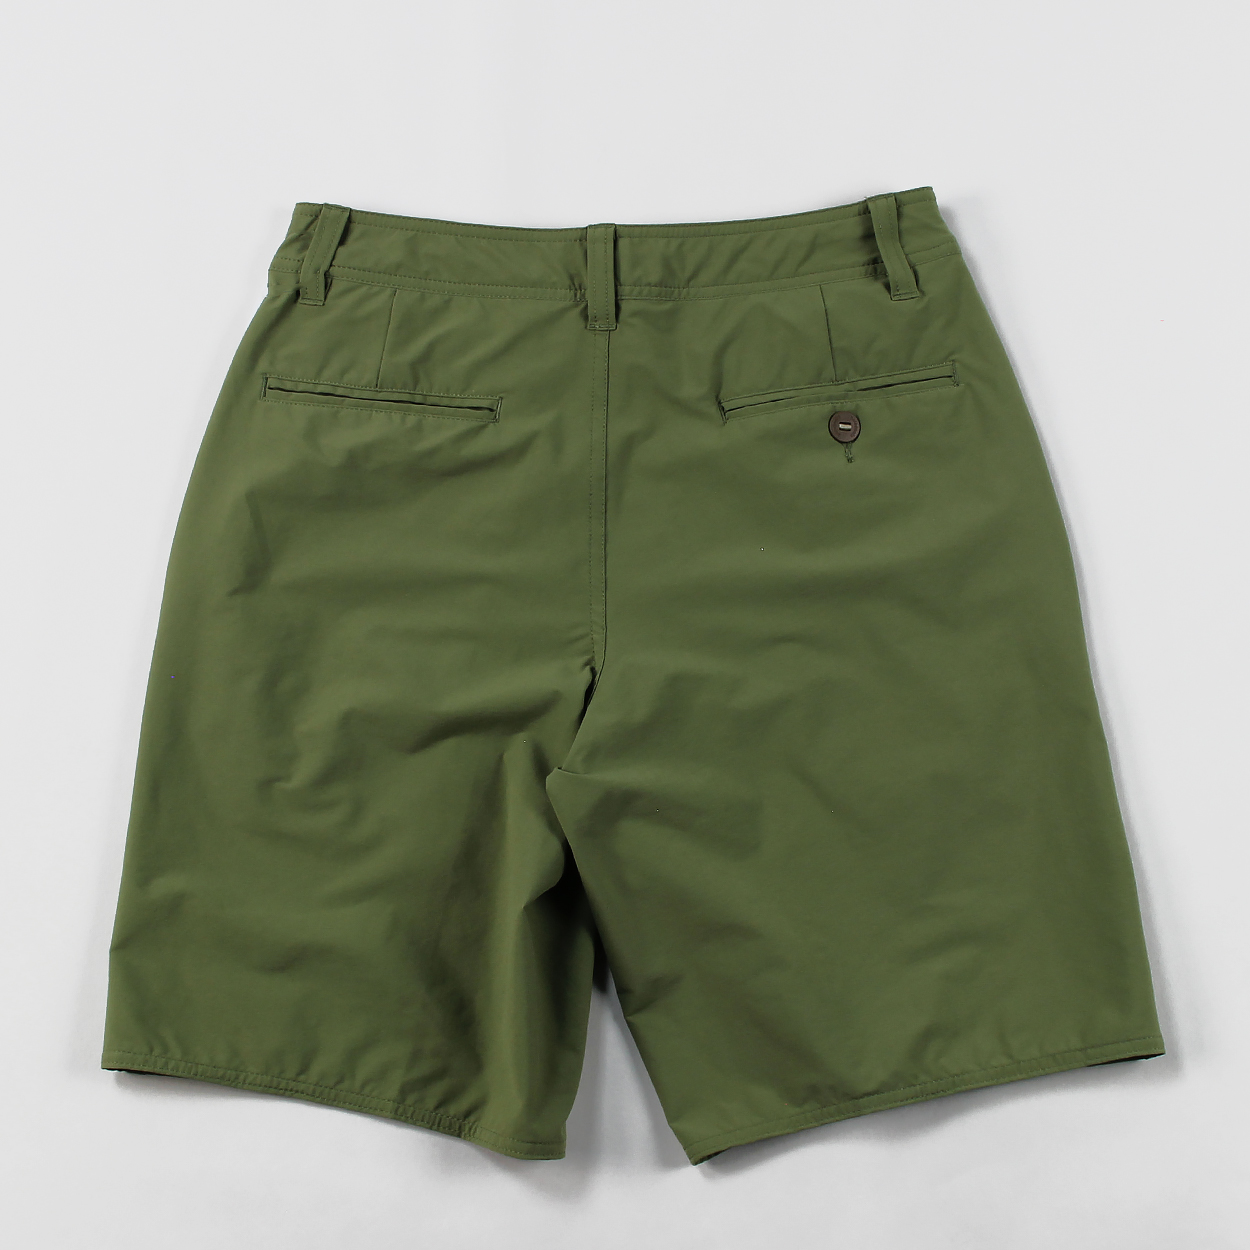 a883dfbbc Patagonia Stretch Wavefarer Walk Shorts Green Swimmers £24.99